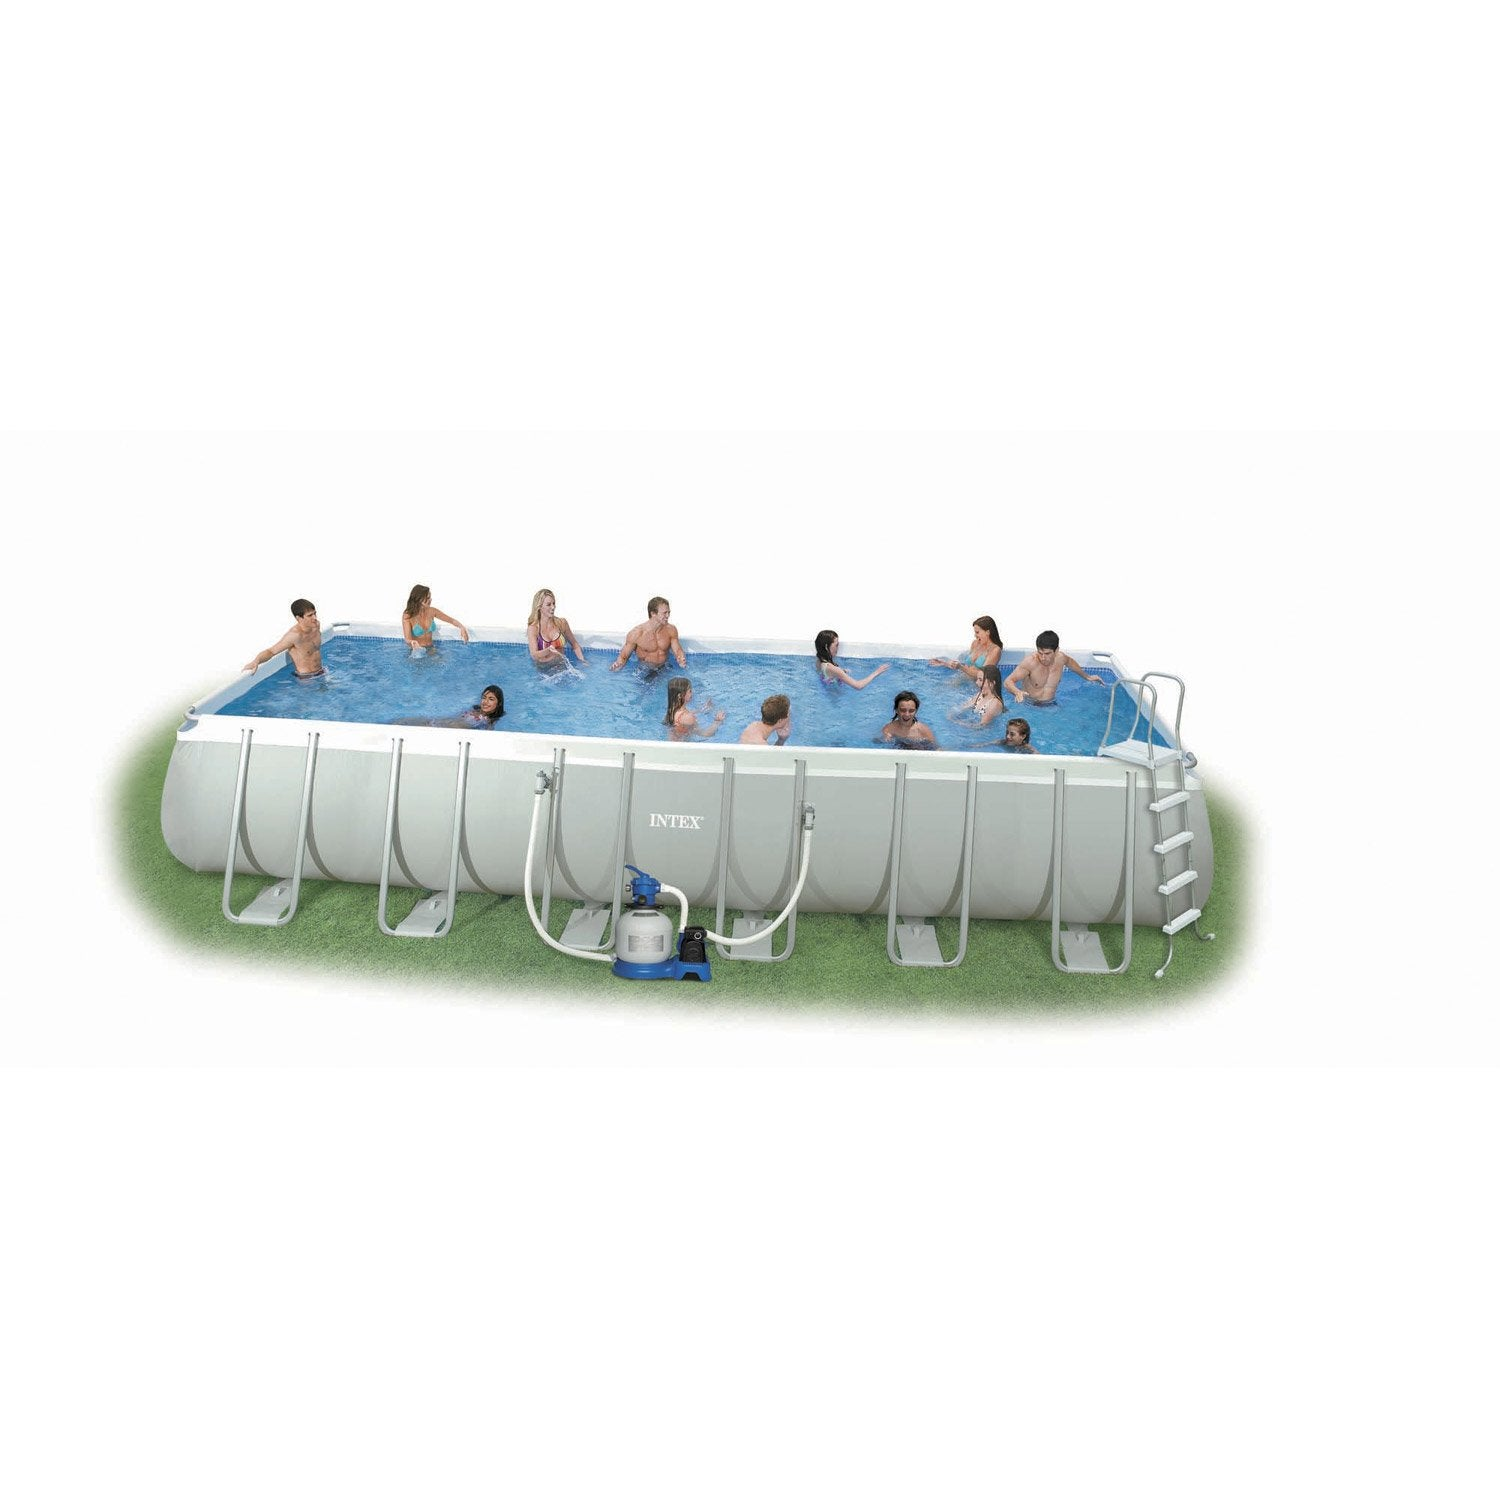 Piscine hors sol tubulaire ultra silver intex l x l for Piscine intex silver ultra